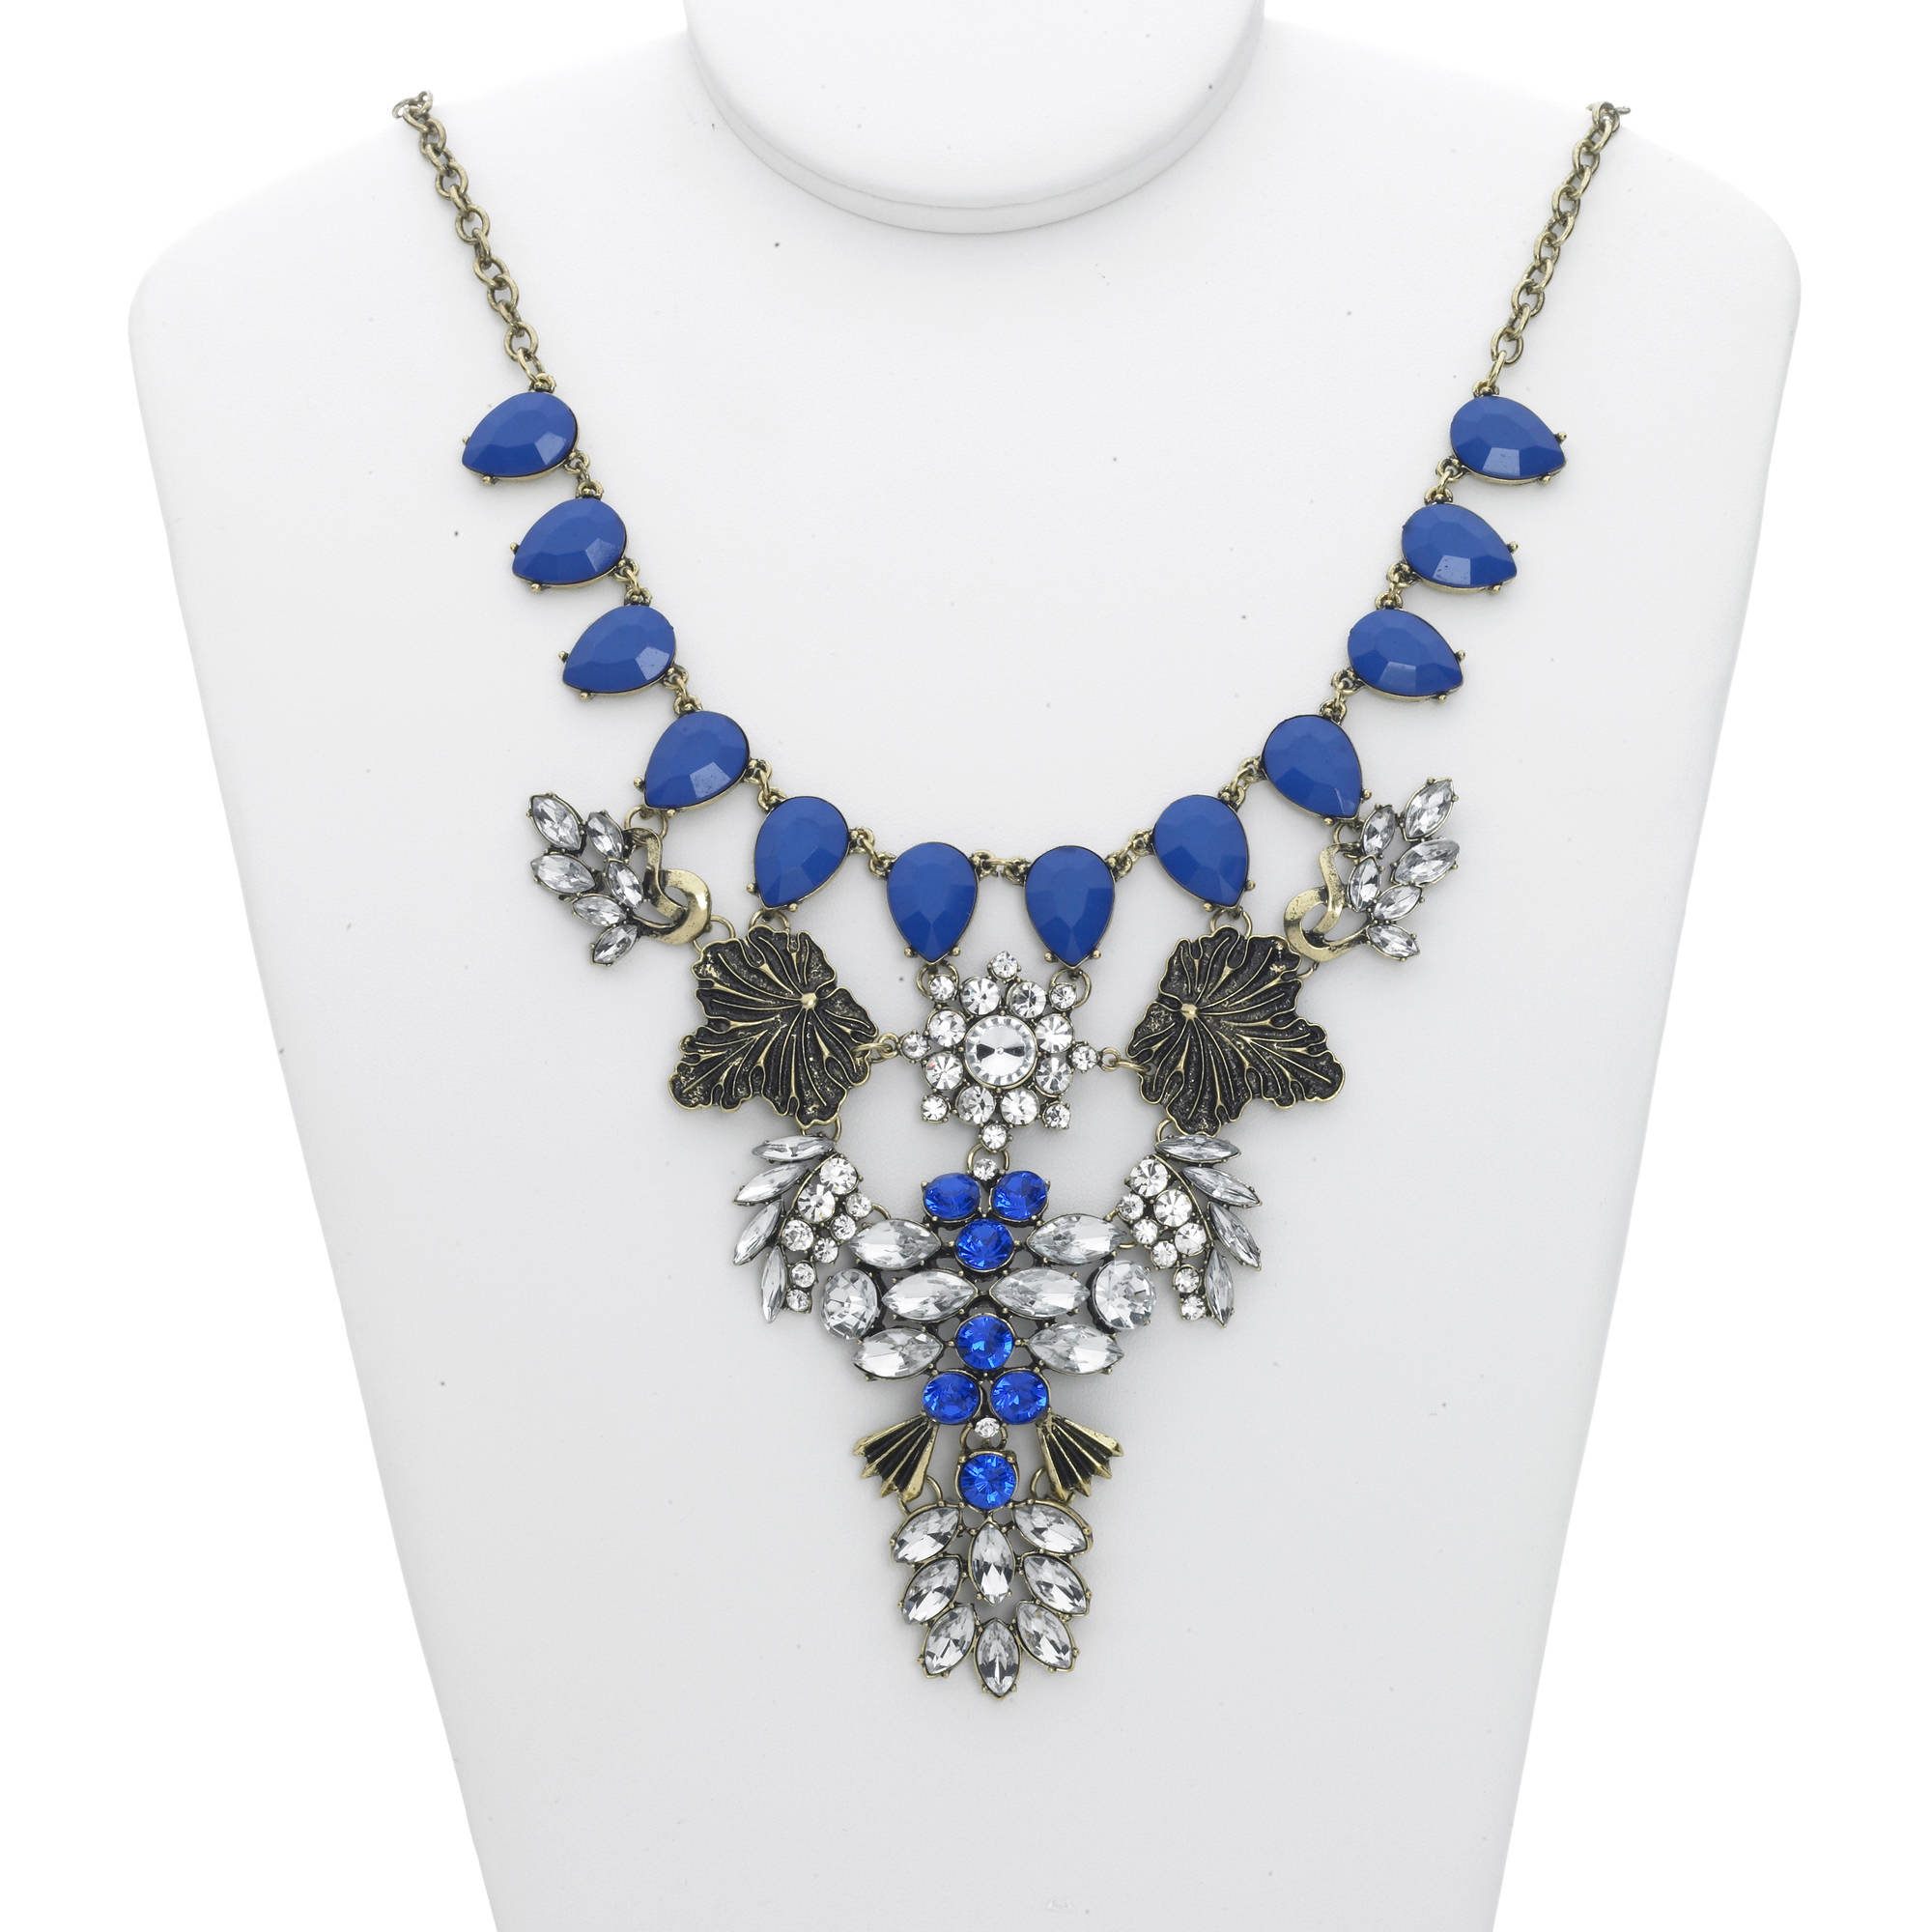 Gold-Tone Crystal Stone with Blue Accent Fashion Statement Necklace